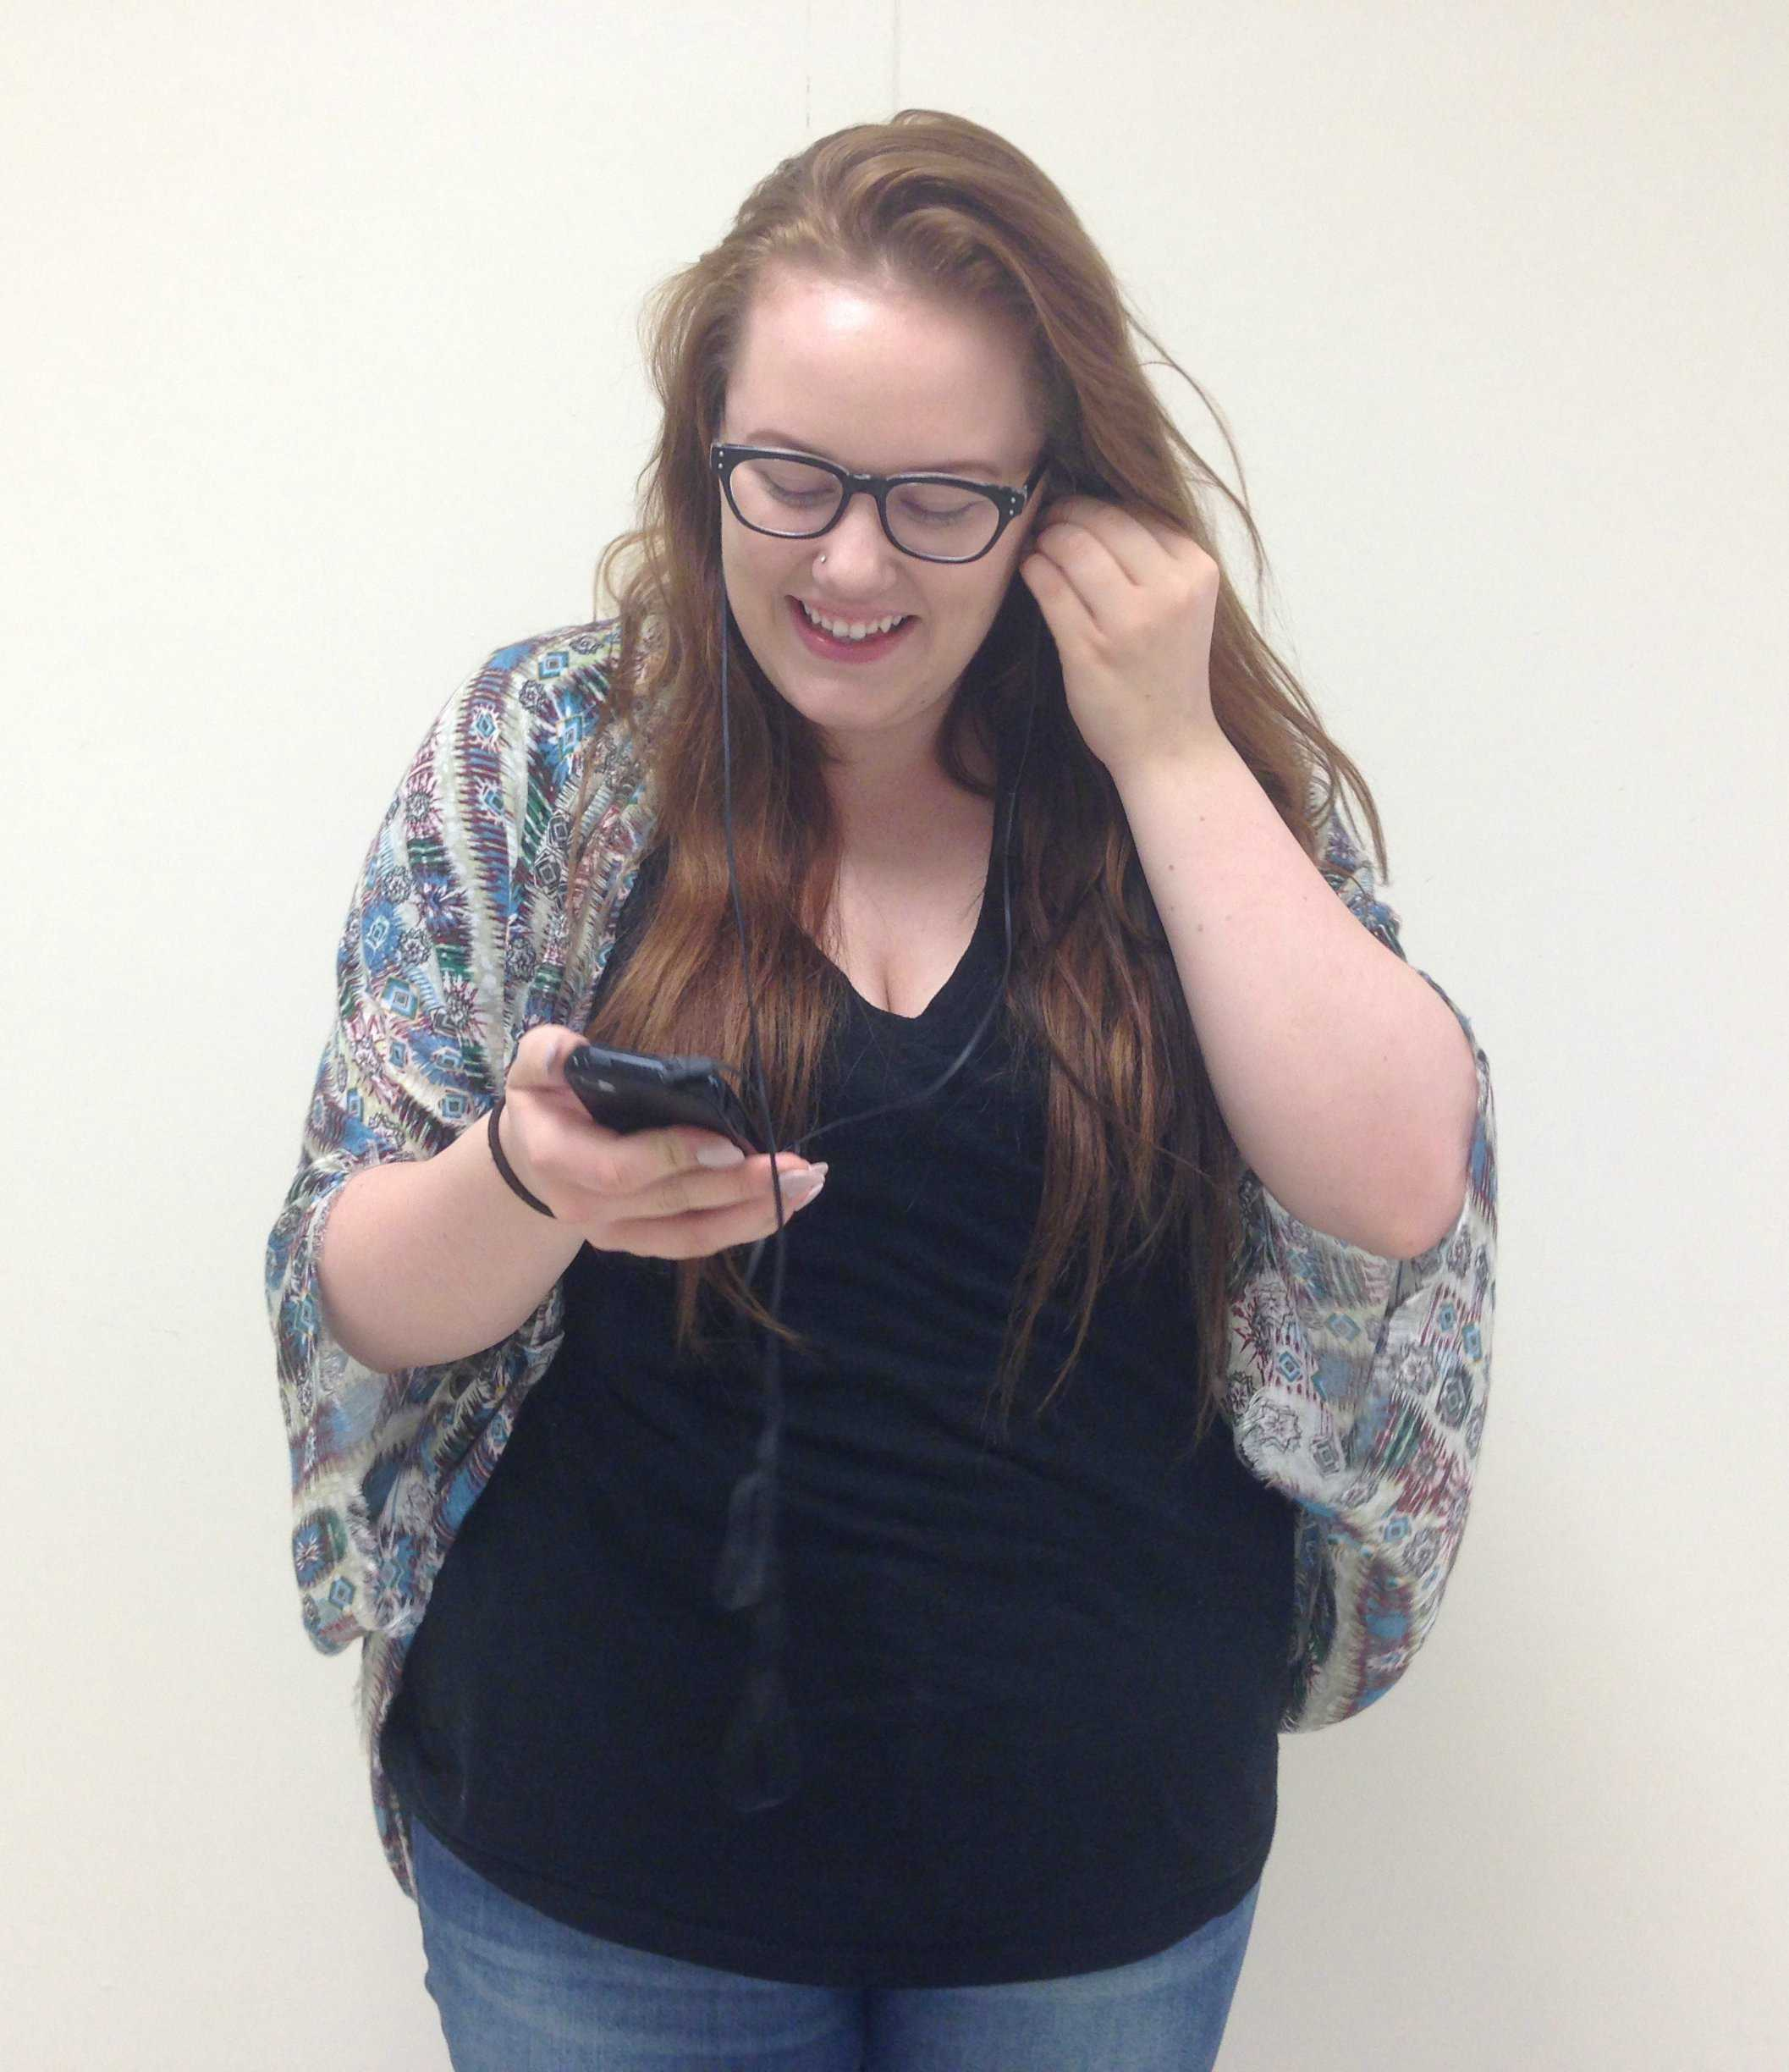 Brooke Branksy listens to her favorite music that she wishes to discuss within this new club.